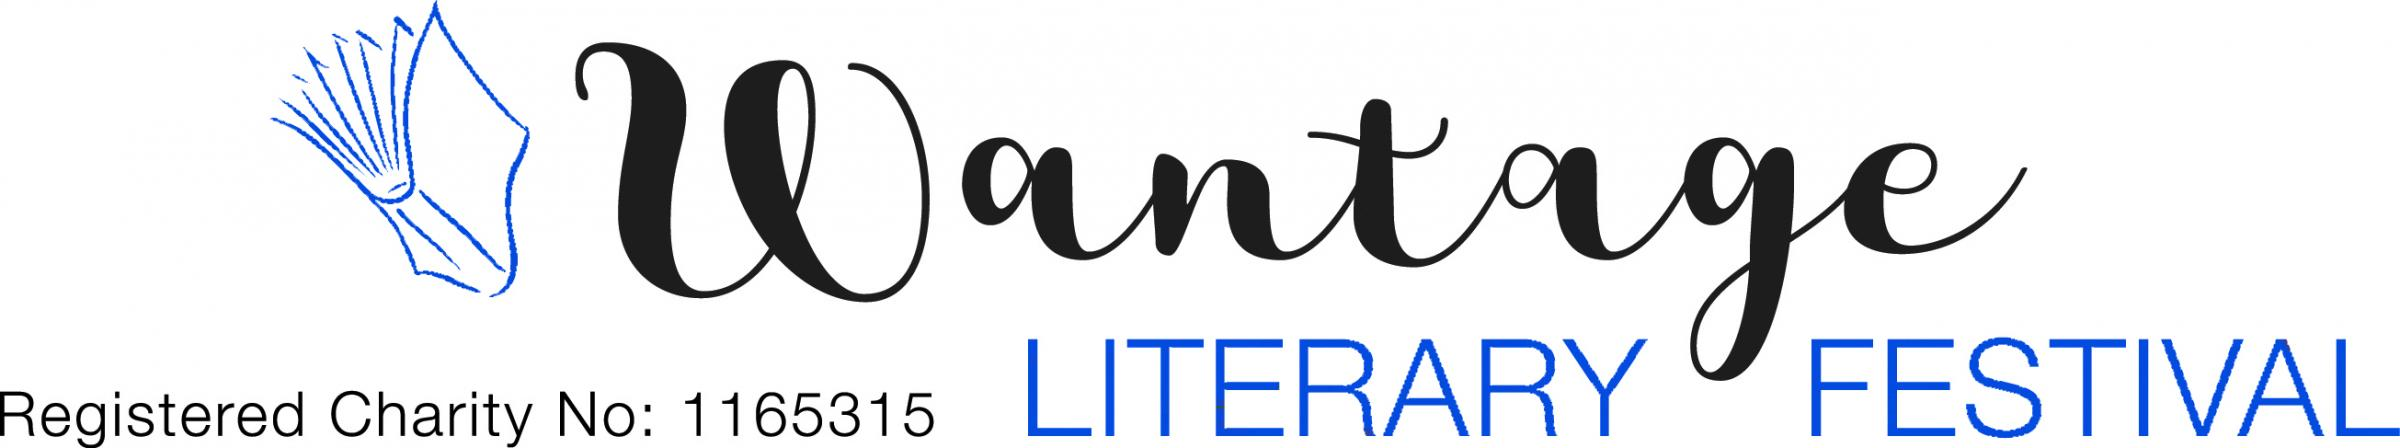 Wantage Literary Festival